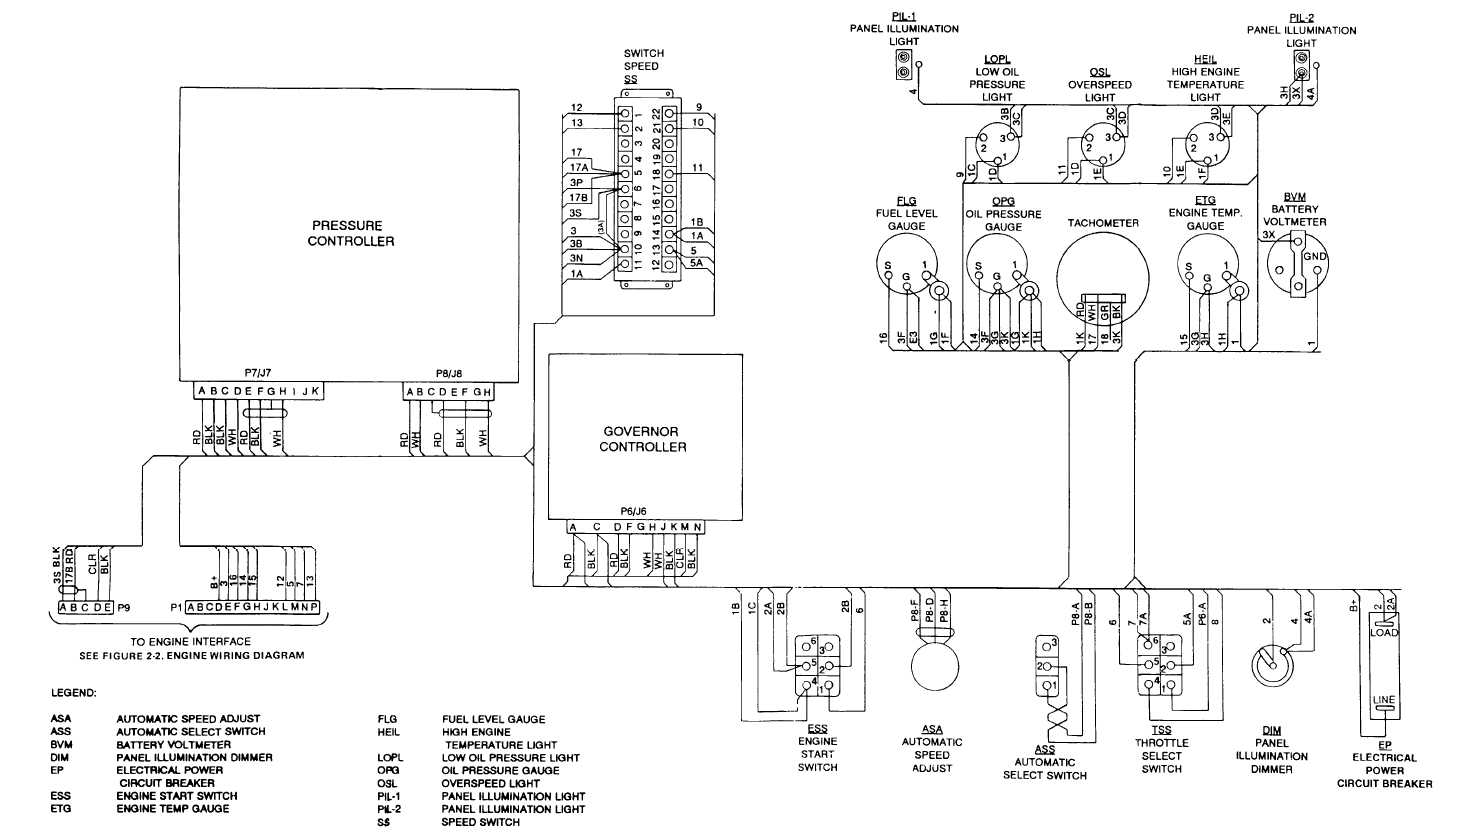 TM 10 4320 315 24_18_1 figure 2 1 control panel wiring diagram (sheet 1 of 4) vcb panel wiring diagram at mifinder.co